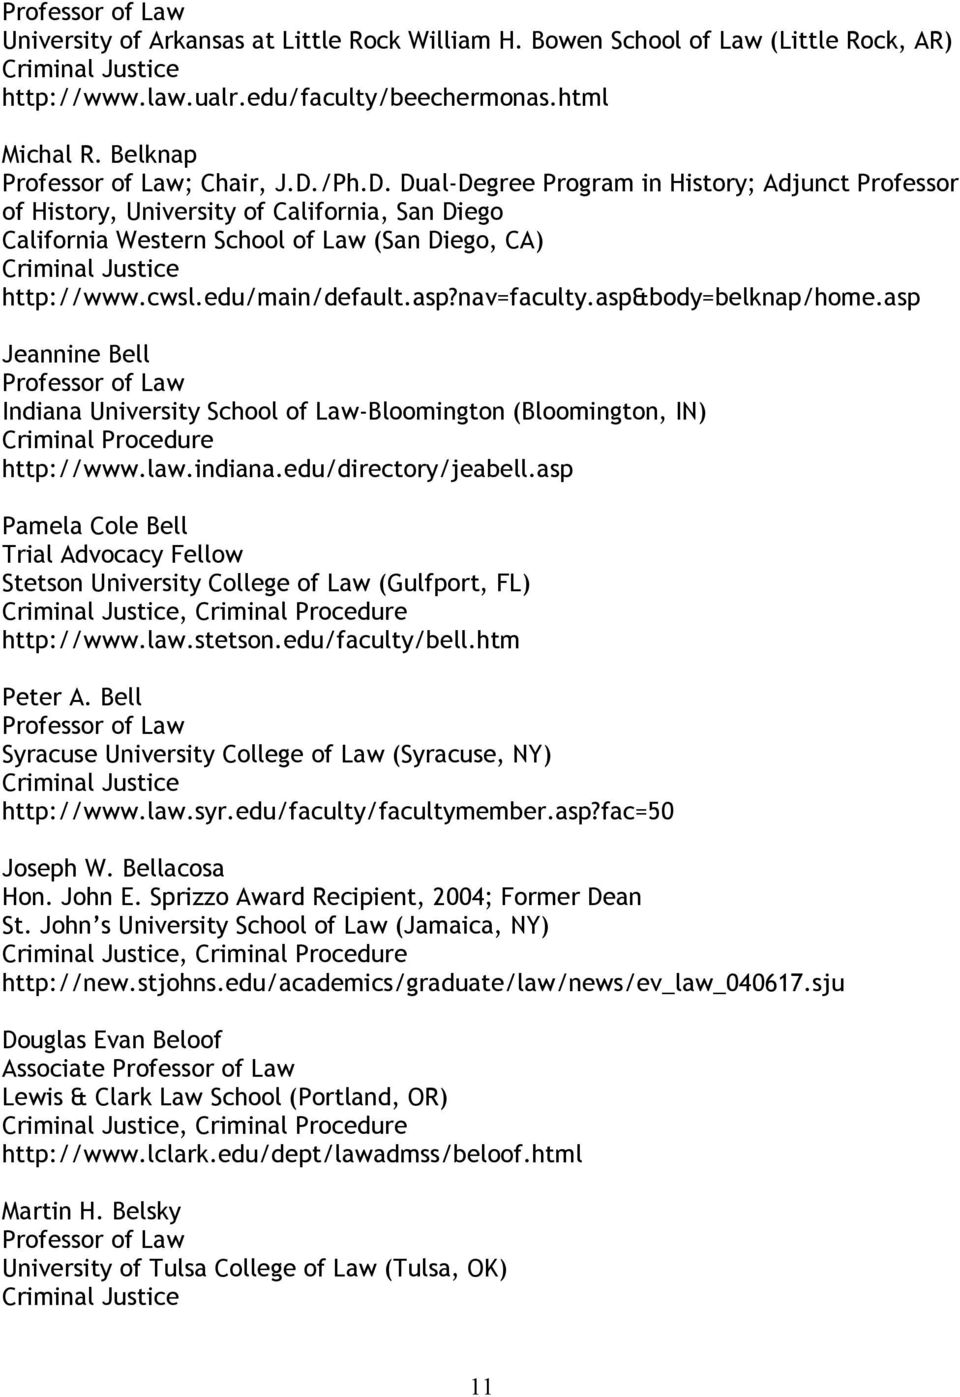 nav=faculty.asp&body=belknap/home.asp Jeannine Bell Indiana University School of Law-Bloomington (Bloomington, IN) http://www.law.indiana.edu/directory/jeabell.